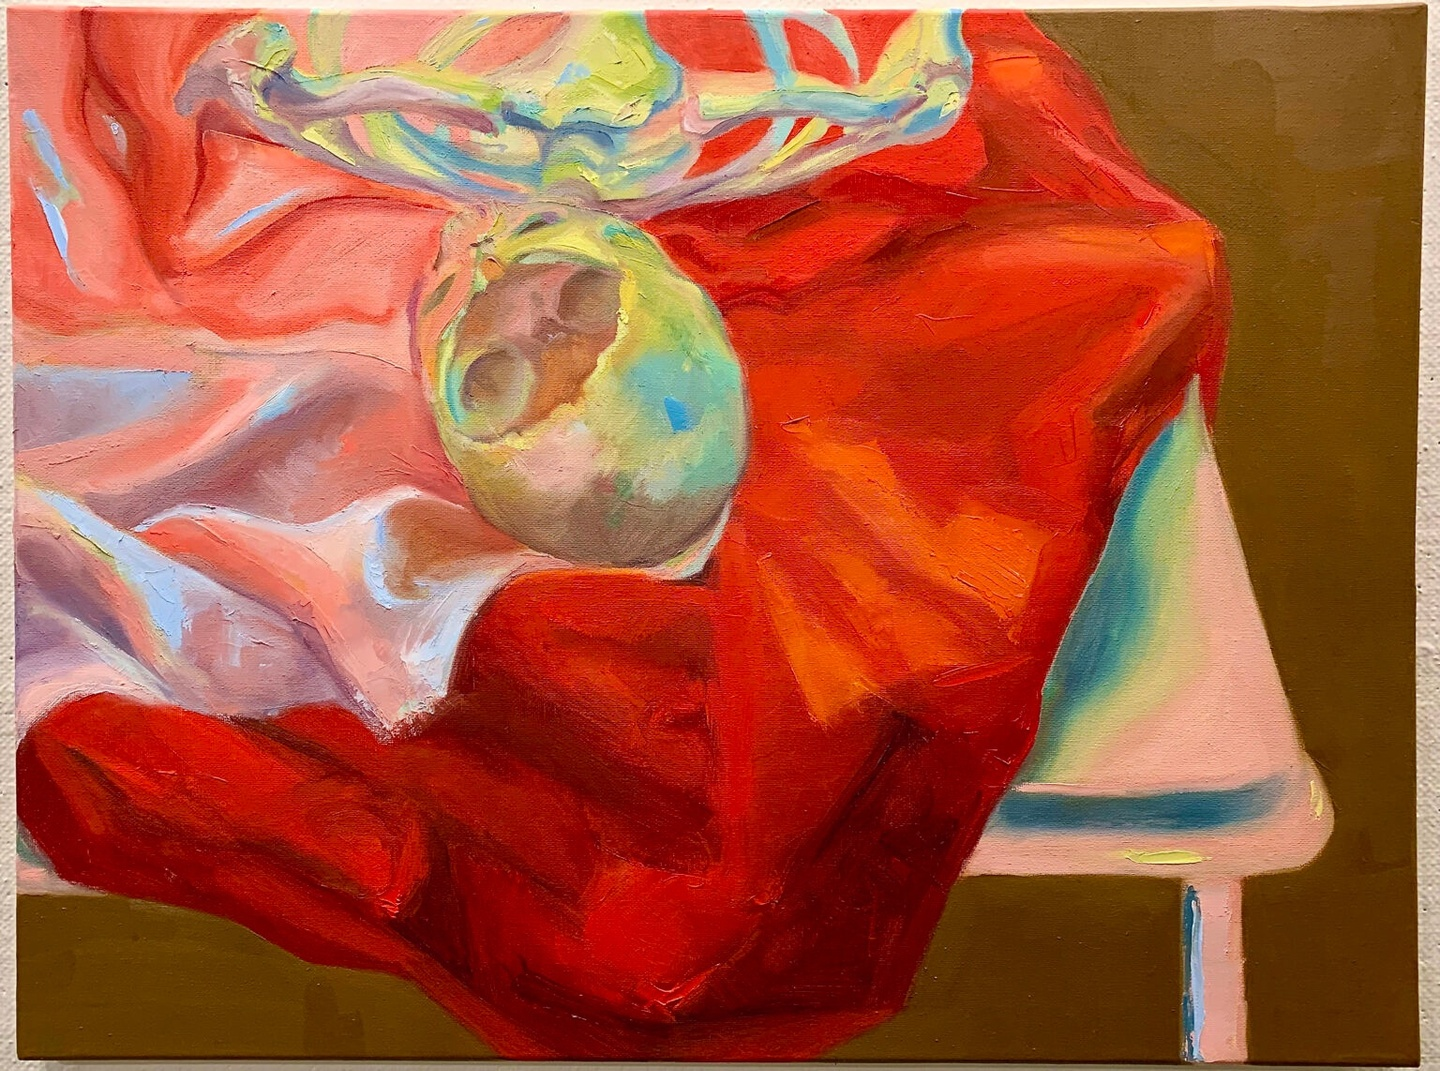 Oil on canvas painting of a skull atop a red/pink draped fabric on a table.